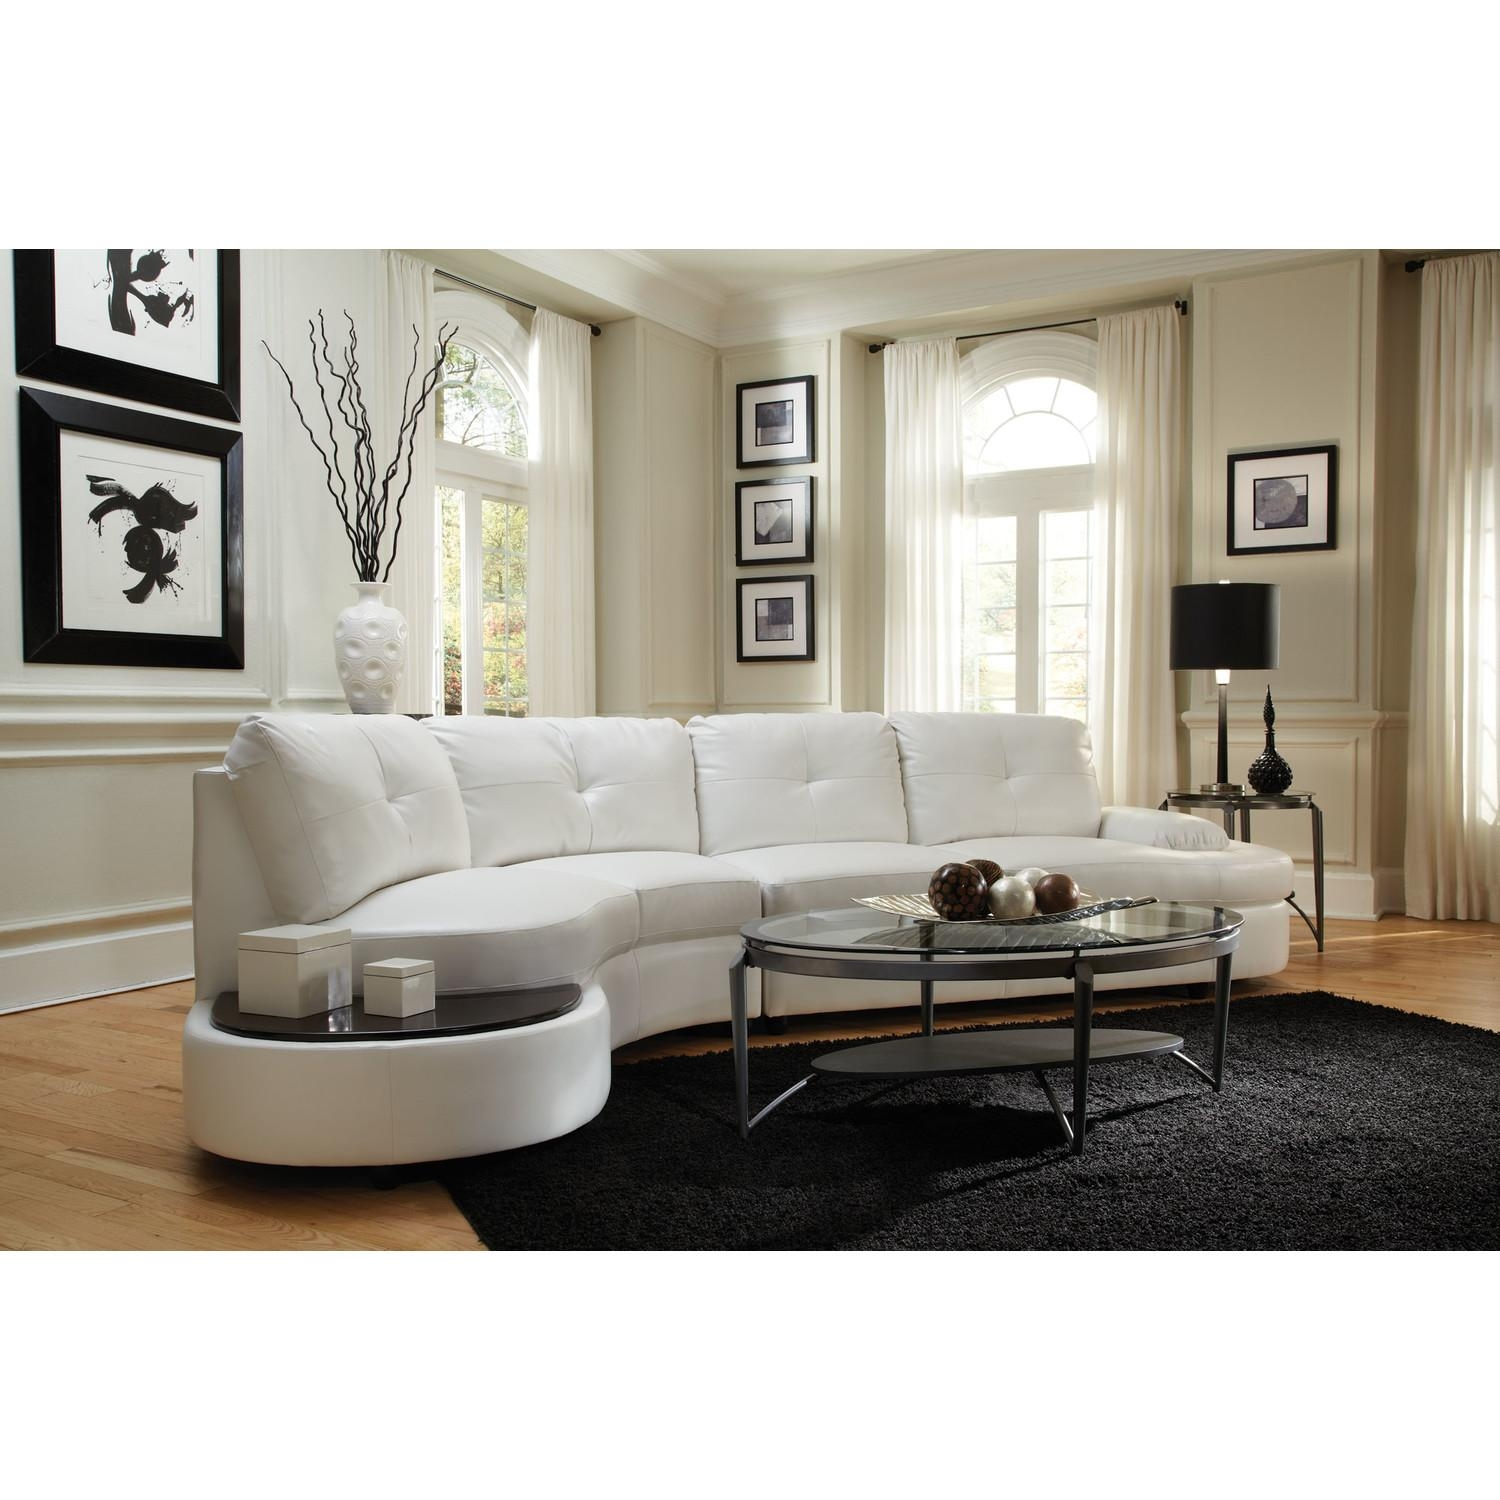 Furniture: Leather Sectional Sofas Cheap Plus Rug And Black Floor Regarding Leather Curved Sectional (Image 10 of 20)